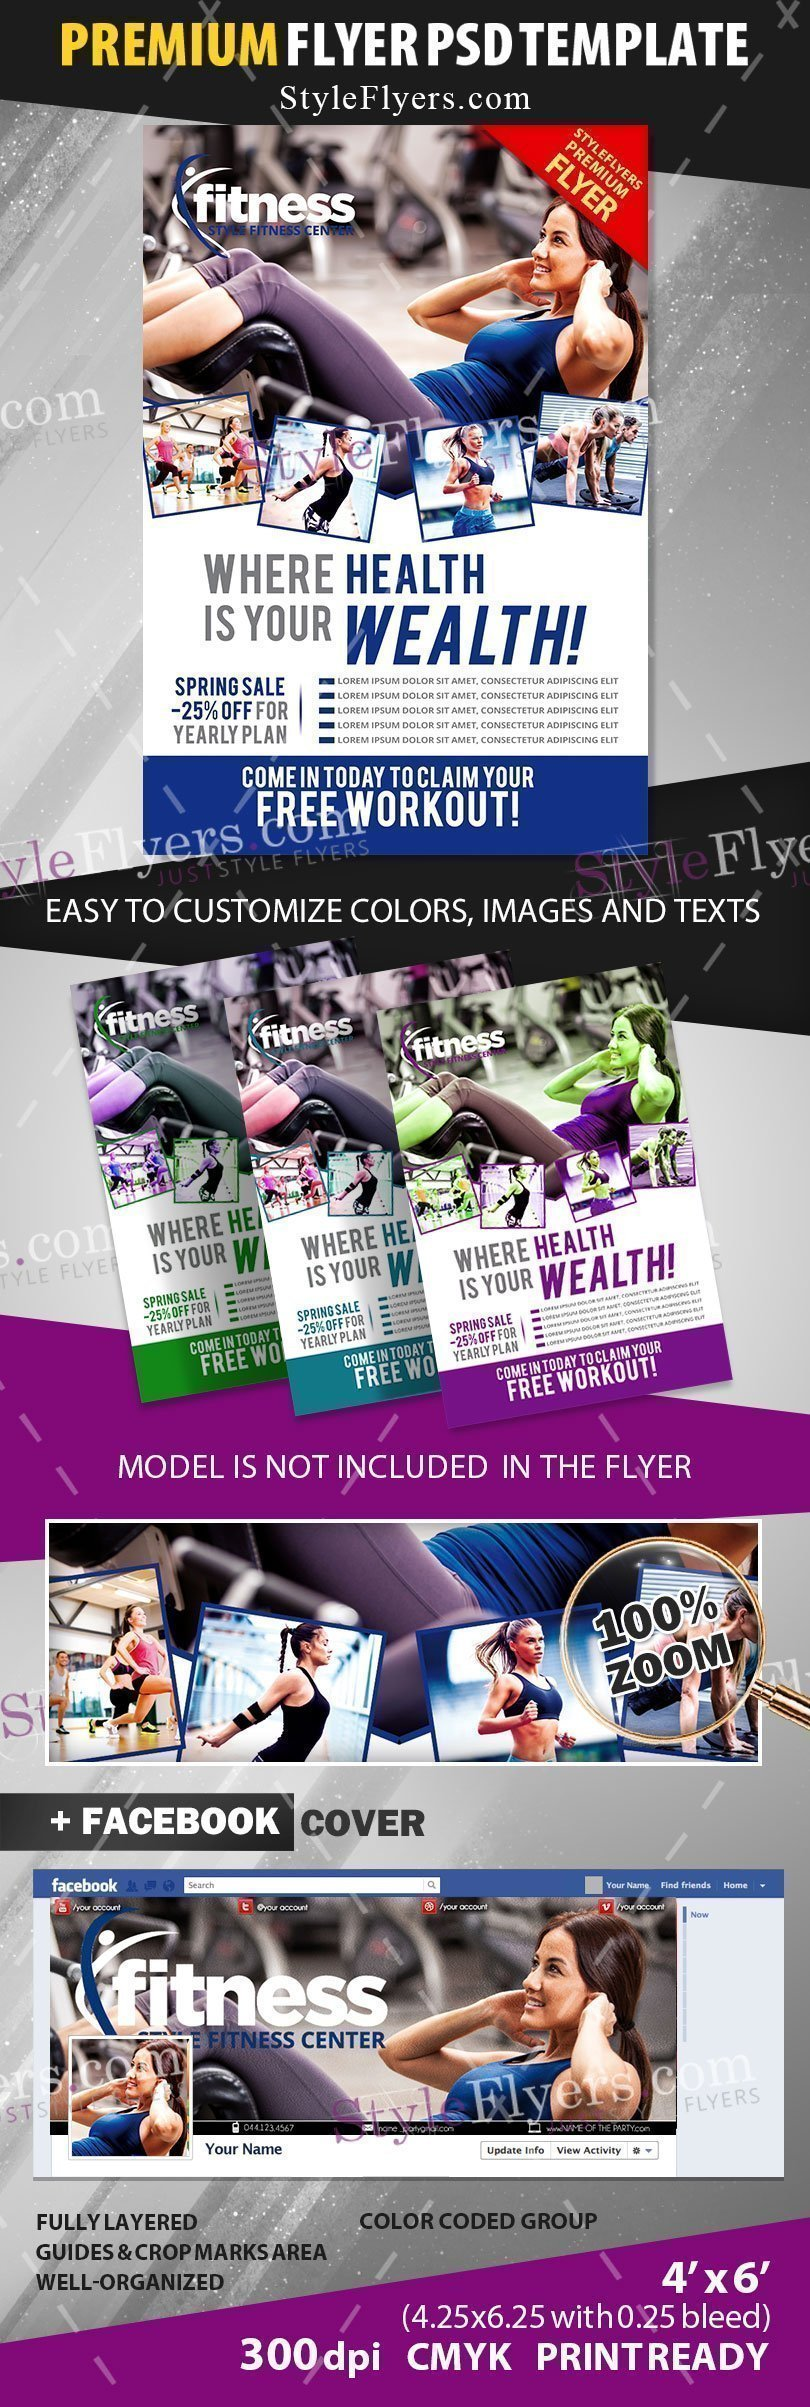 preview_fitness_premium_template